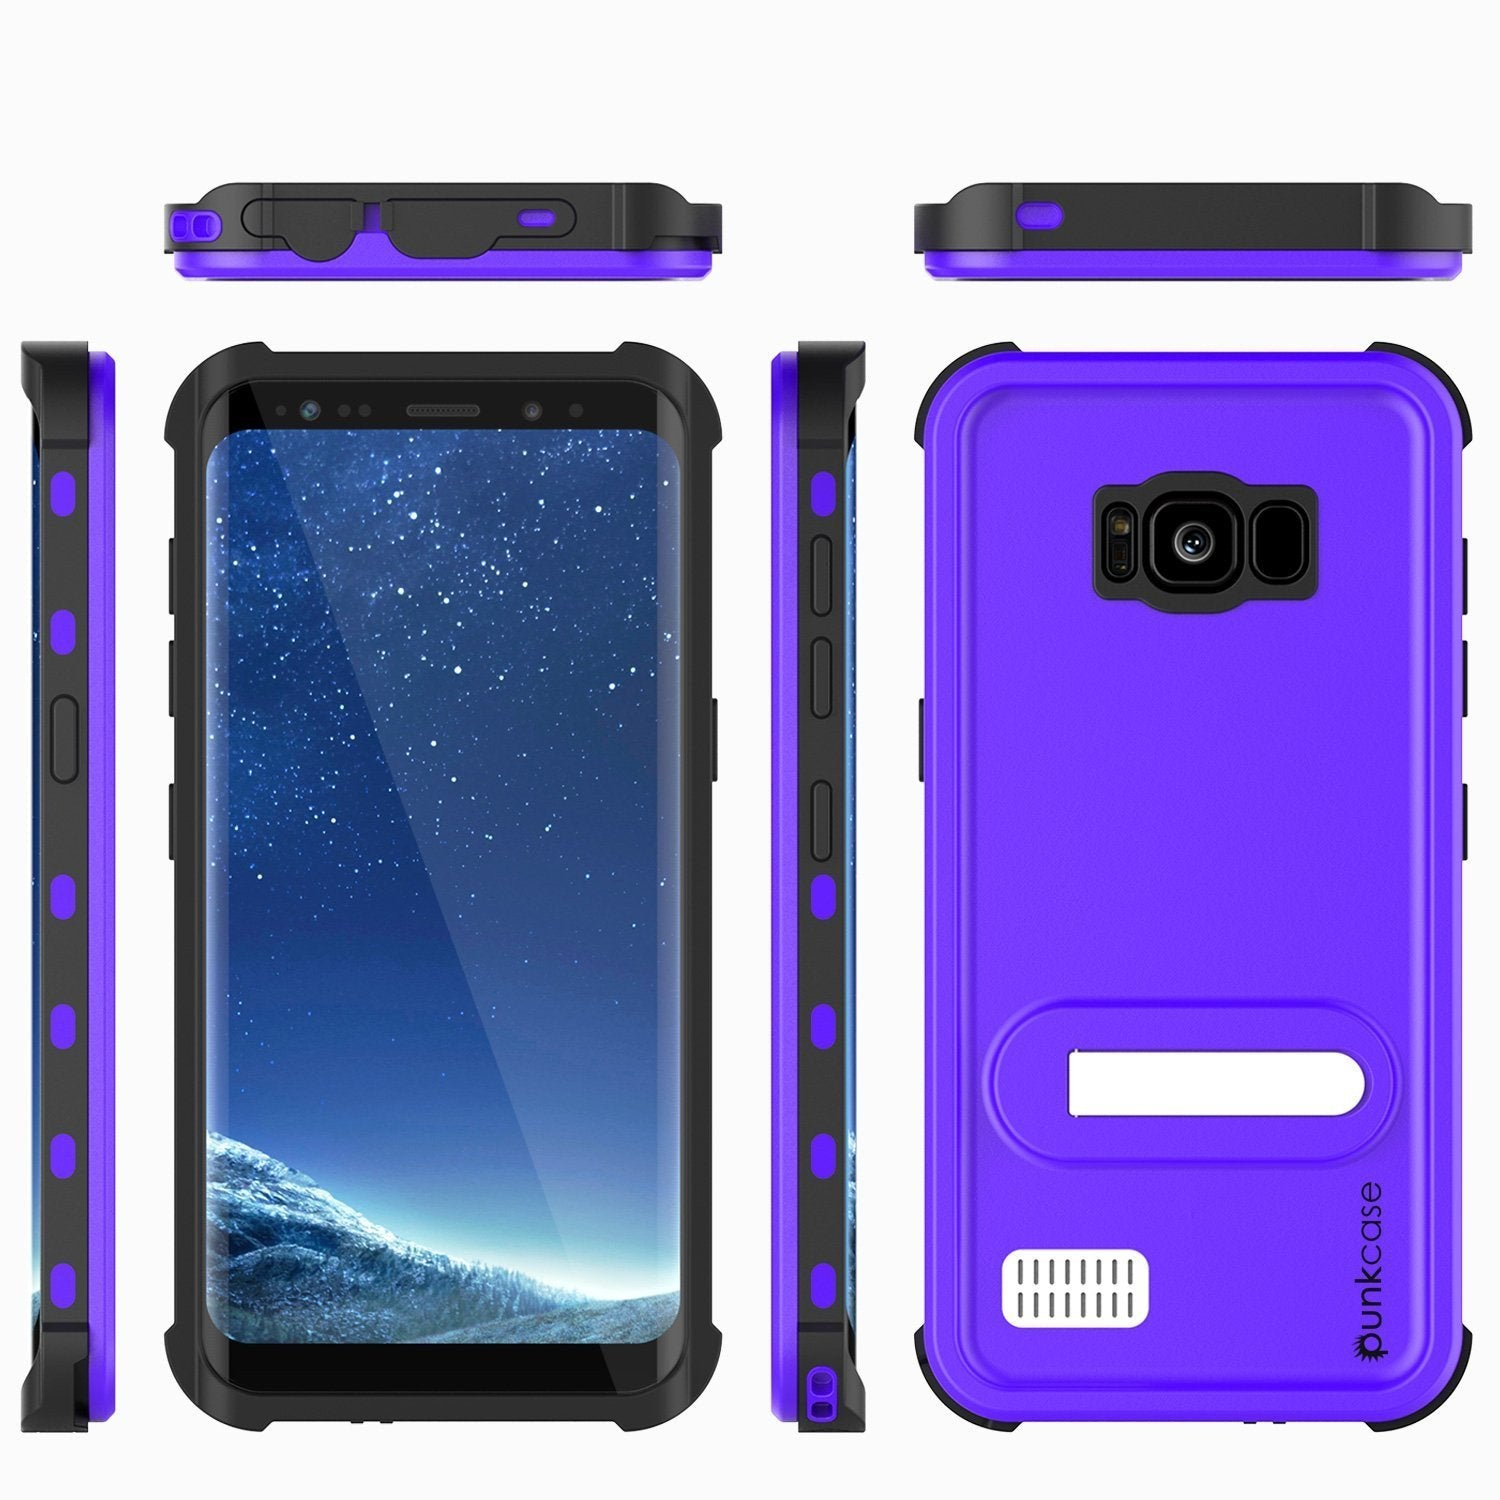 Galaxy S8 Plus Water/Shock Proof Screen Protector Case [Purple]